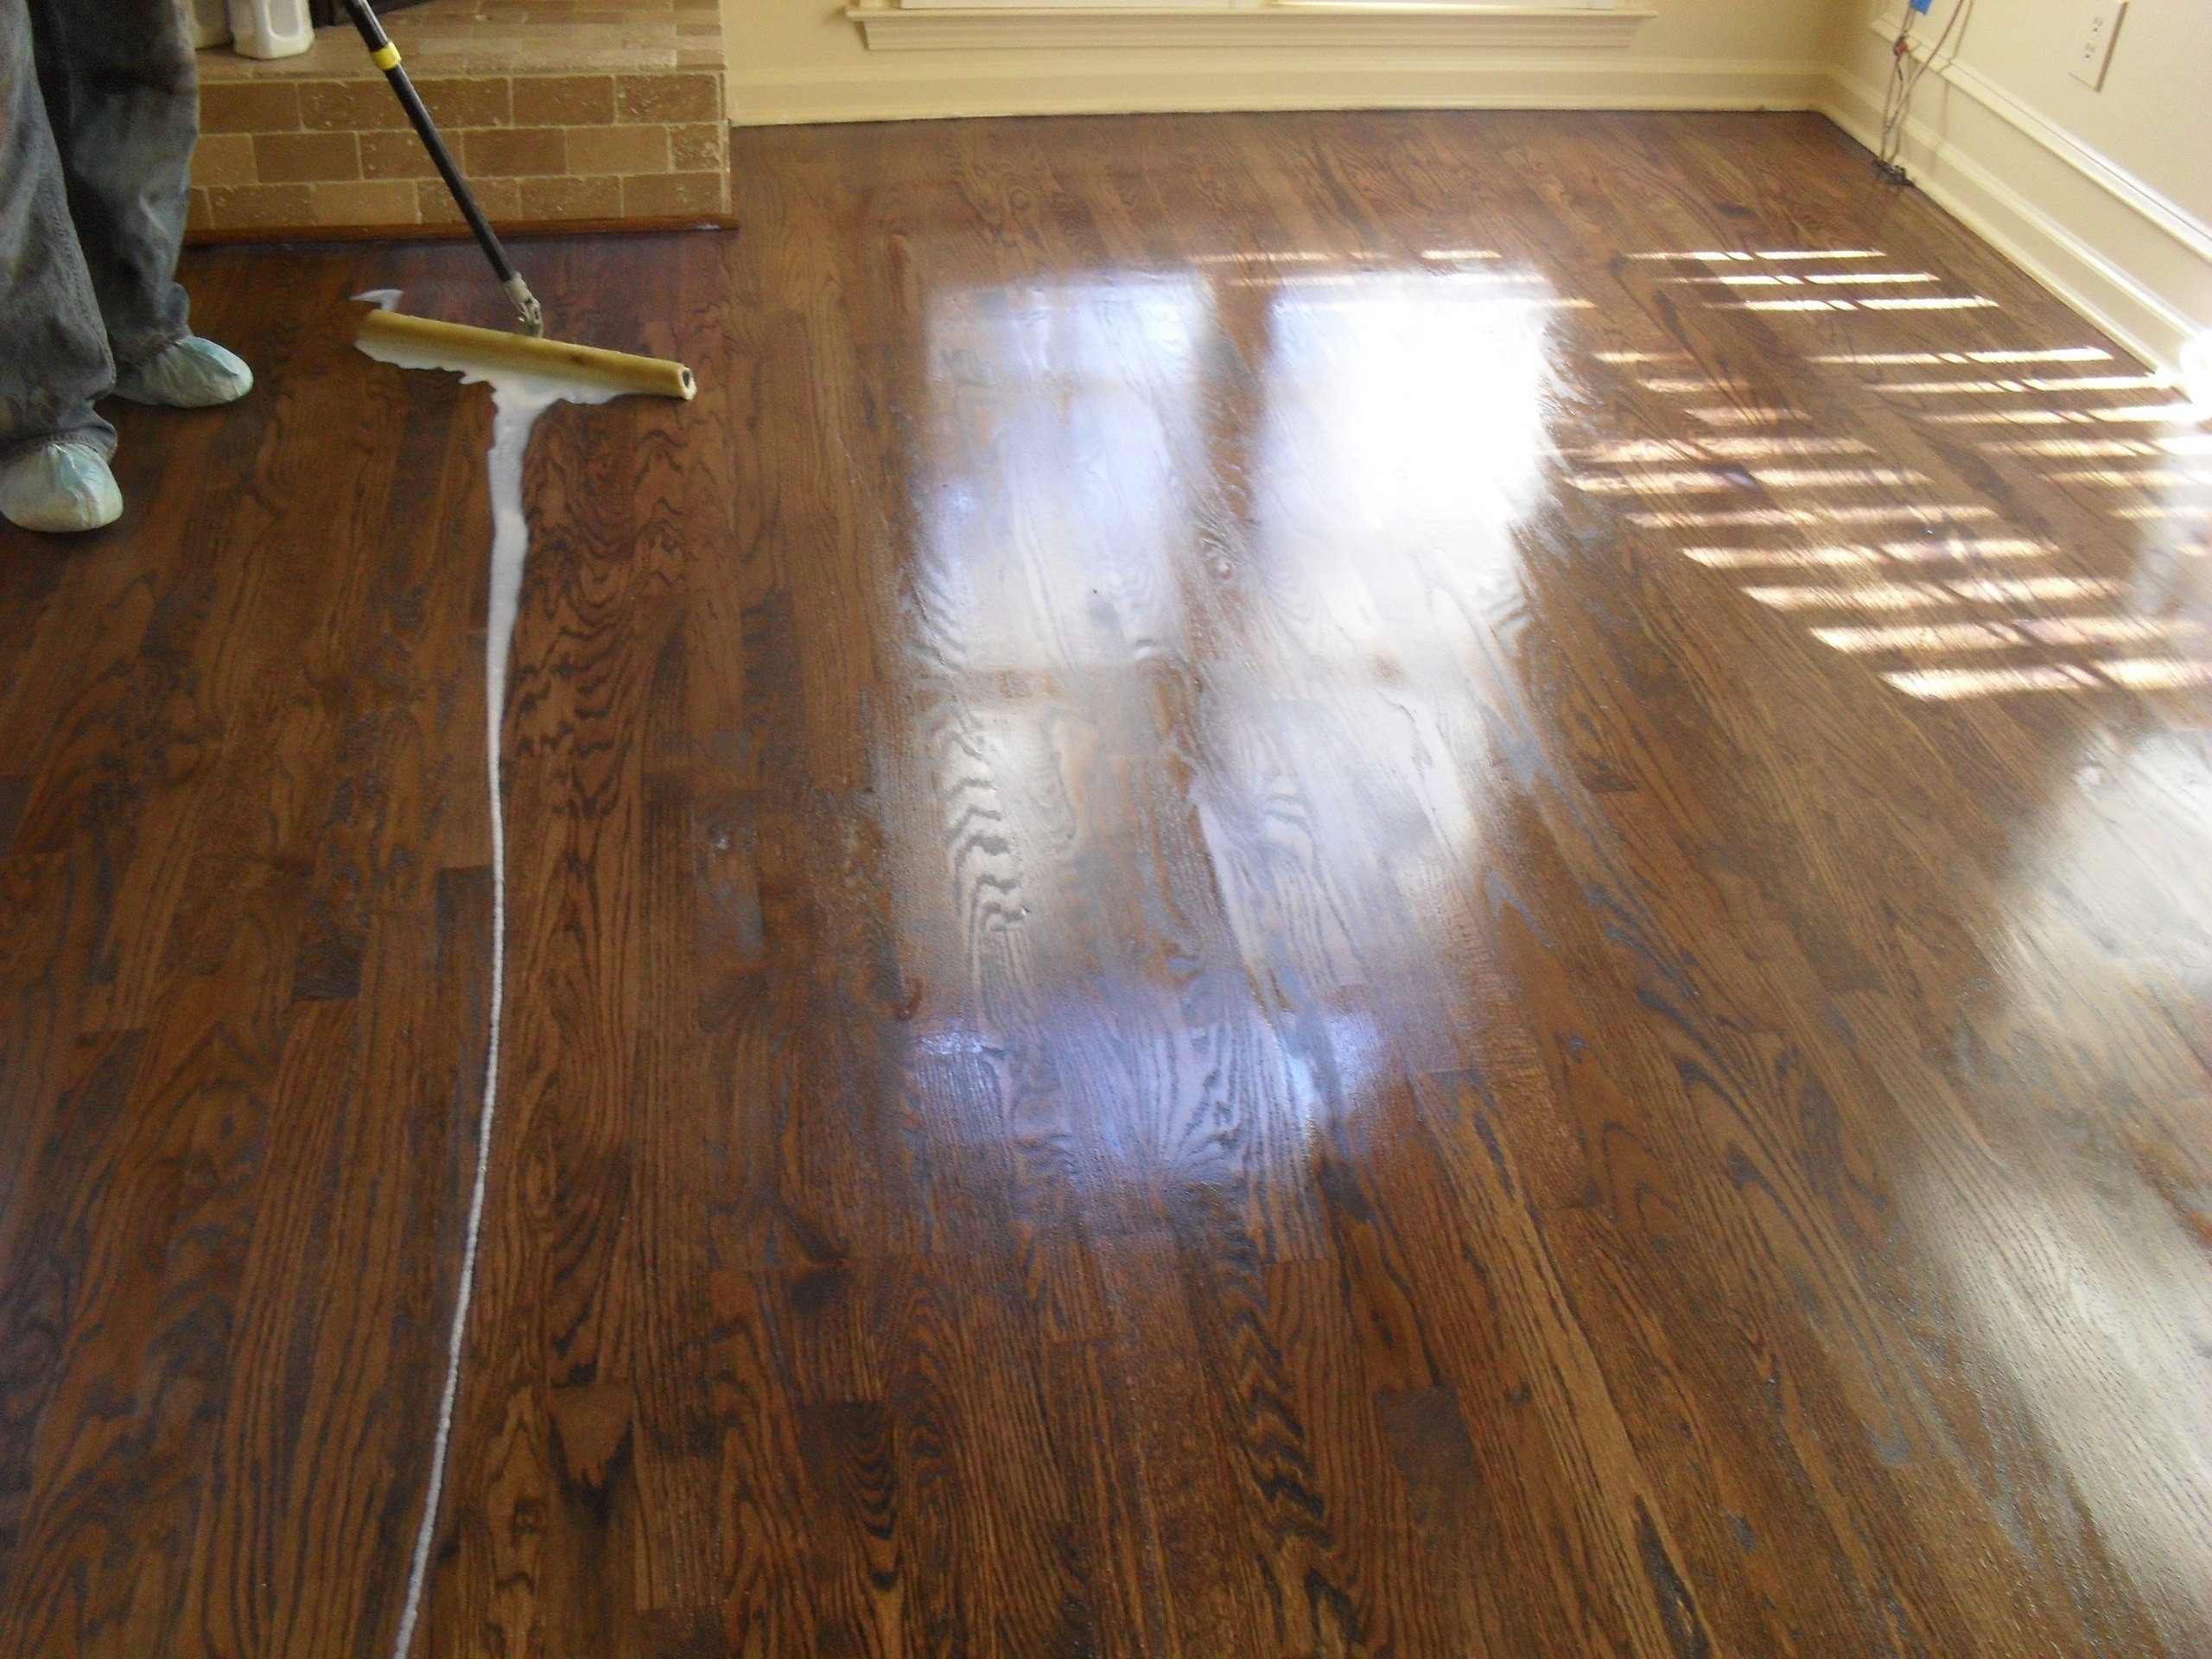 how to sand hardwood floors of refinish hardwood floors diy restain wood floor awesome how to within refinish hardwood floors diy restain wood floor awesome how to refinish wood floors pinterest